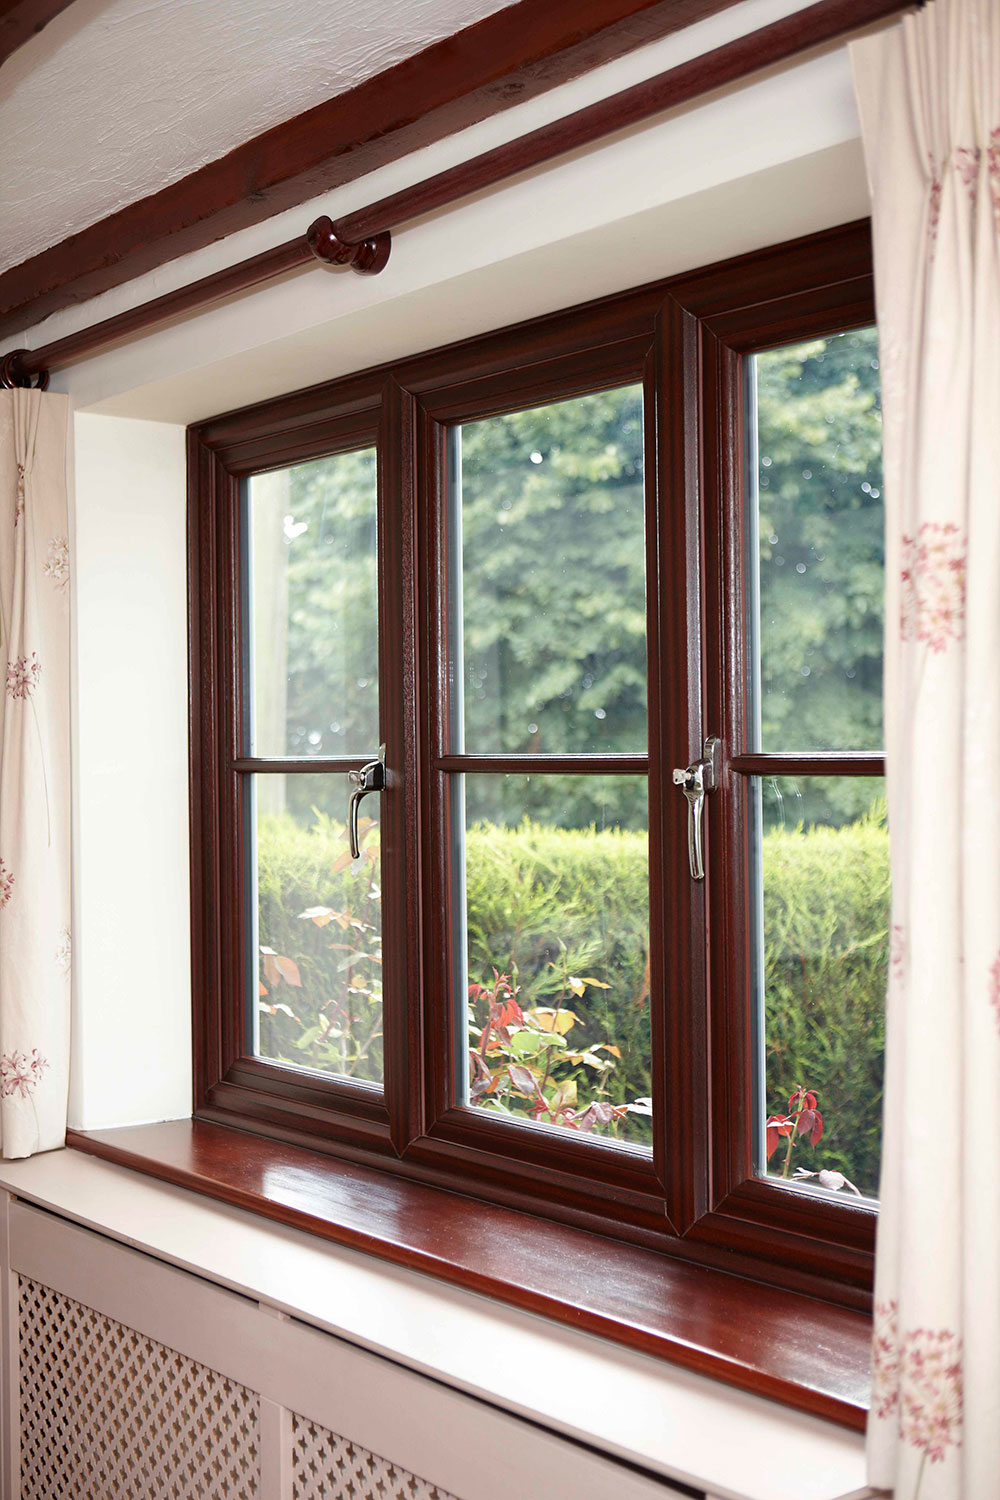 Upvc Windows Home : Casement windows windowmate upvc home improvements